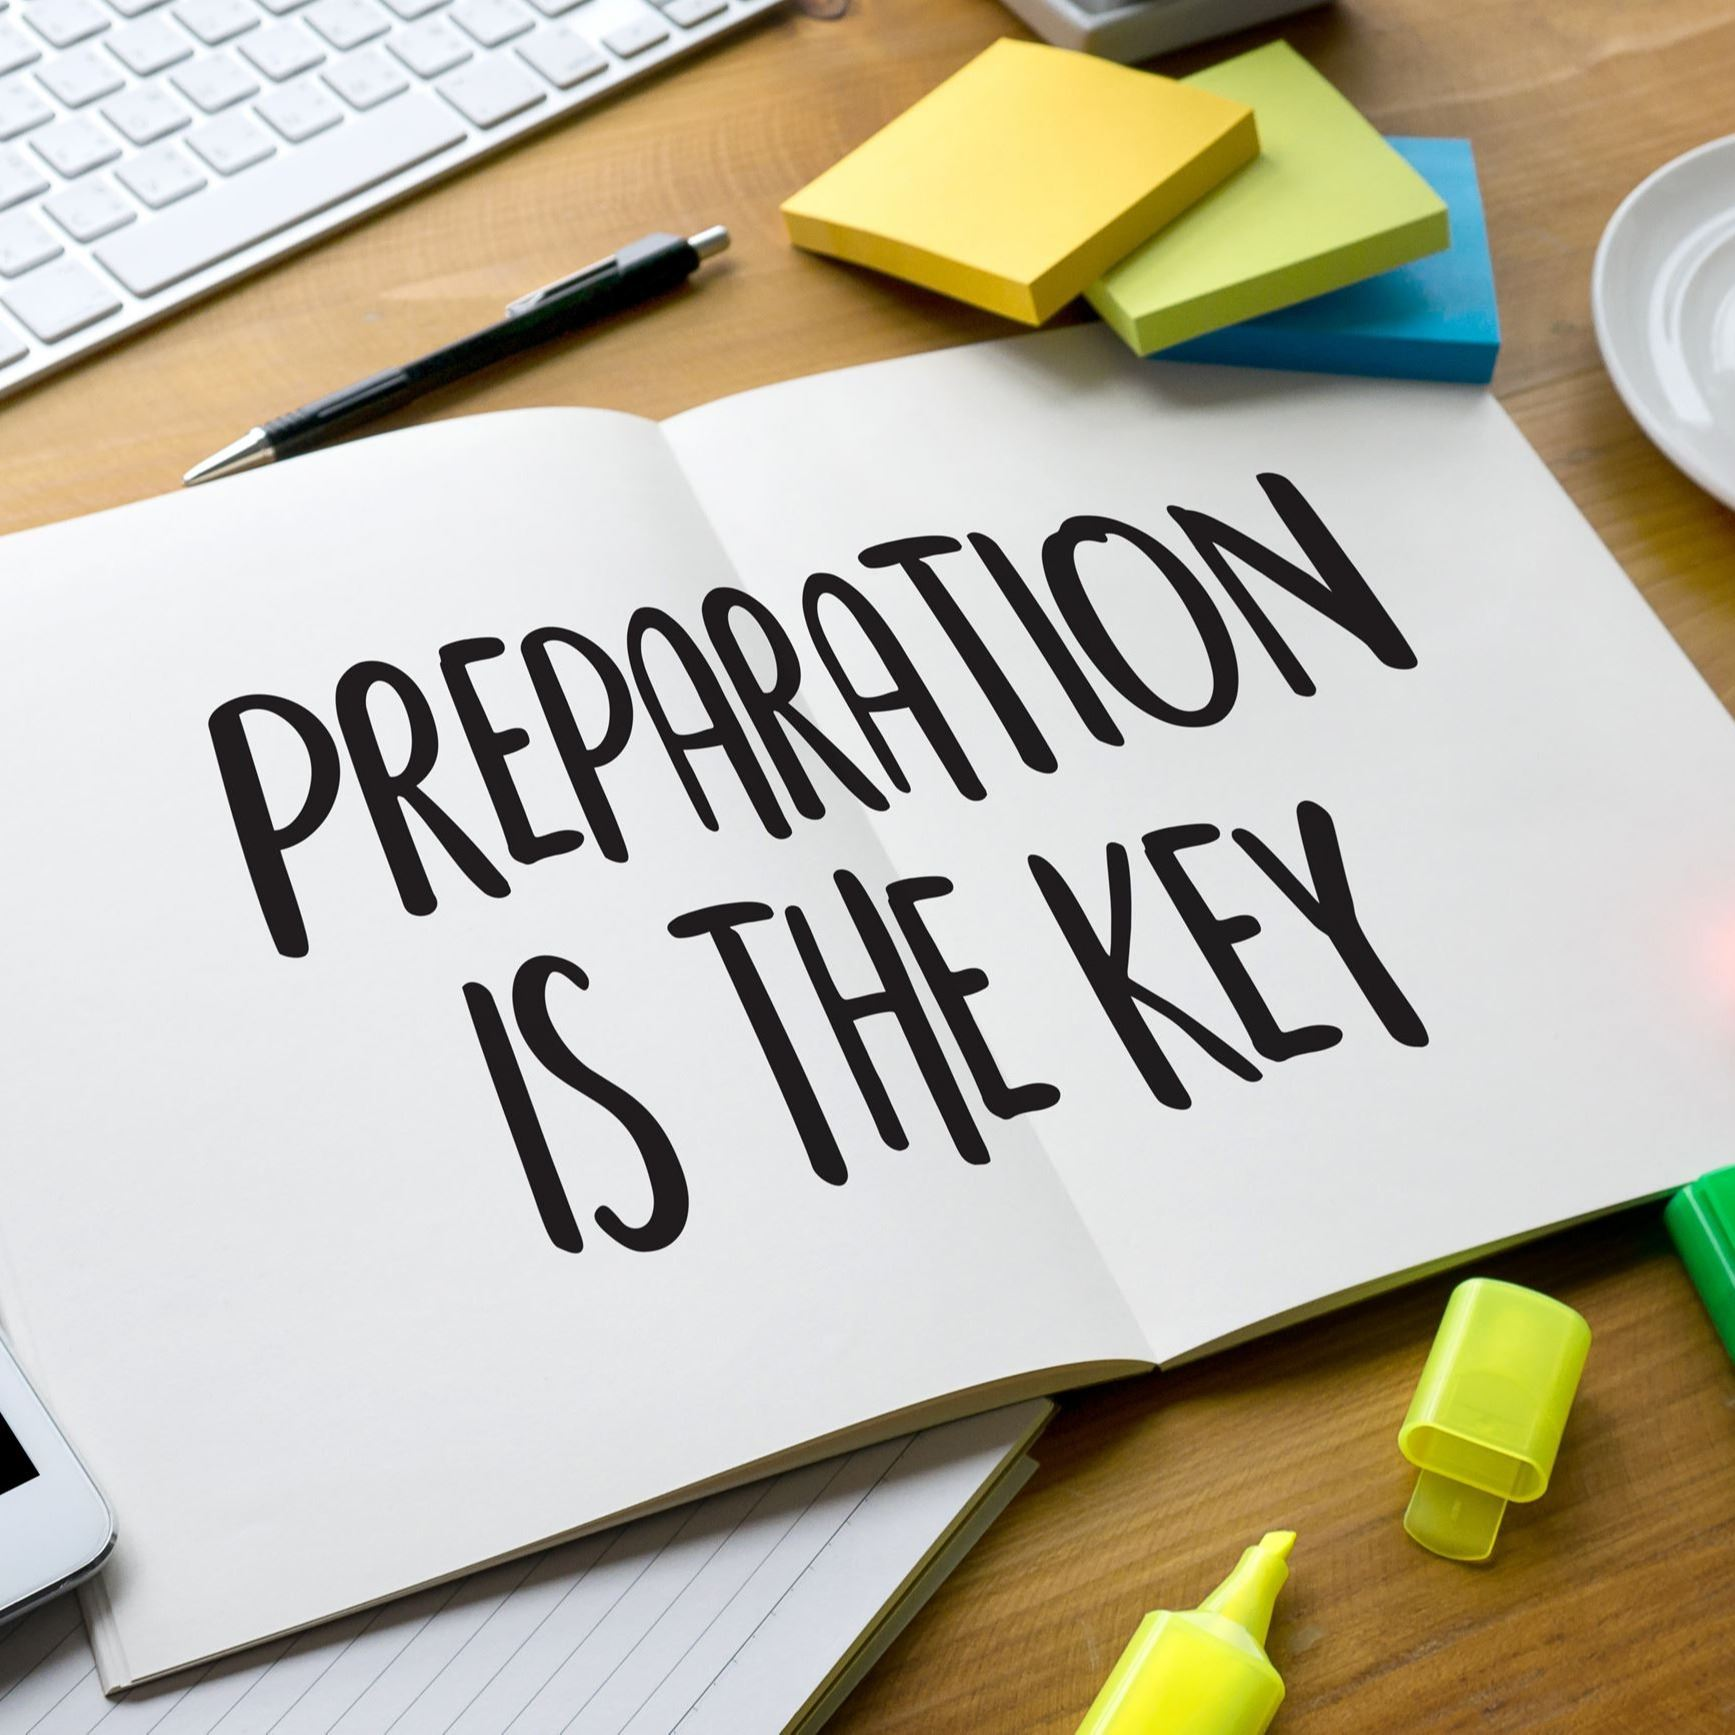 """Preparedness is Key"" written on paper"